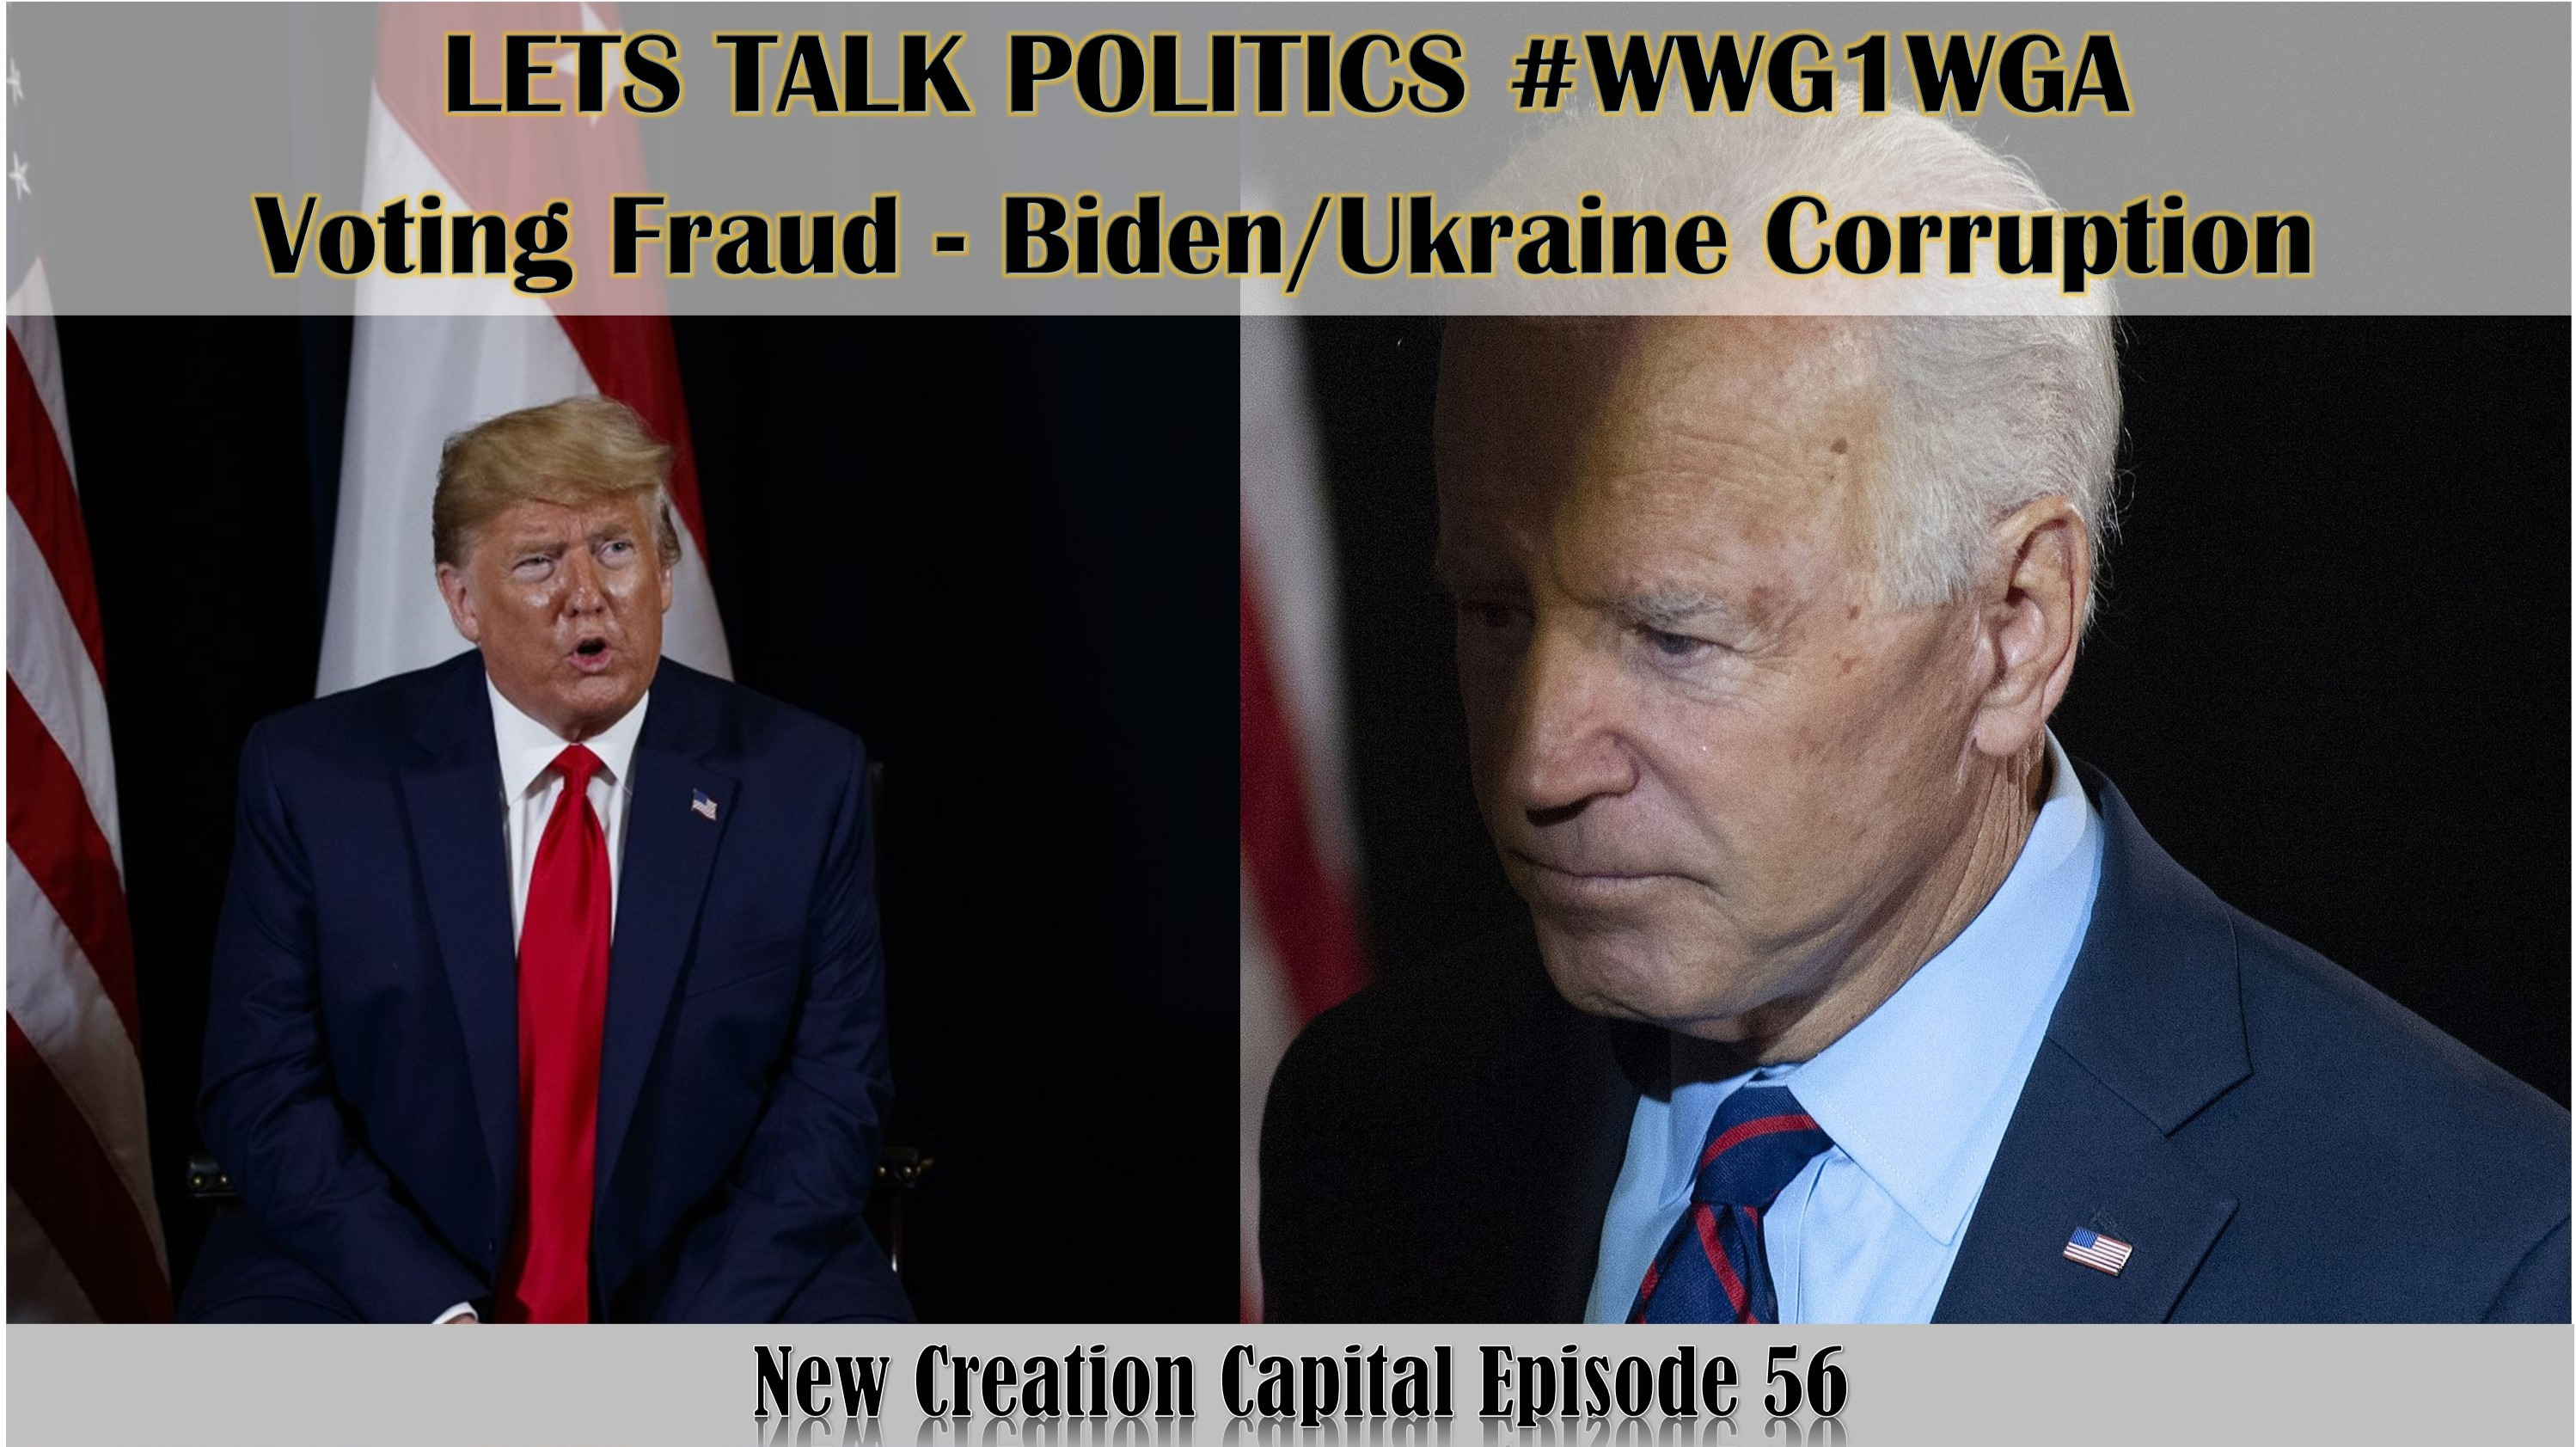 Episode 56: Lets Talk Politics, Q, Voting Fraud, Biden/Ukraine #WWG1WGA